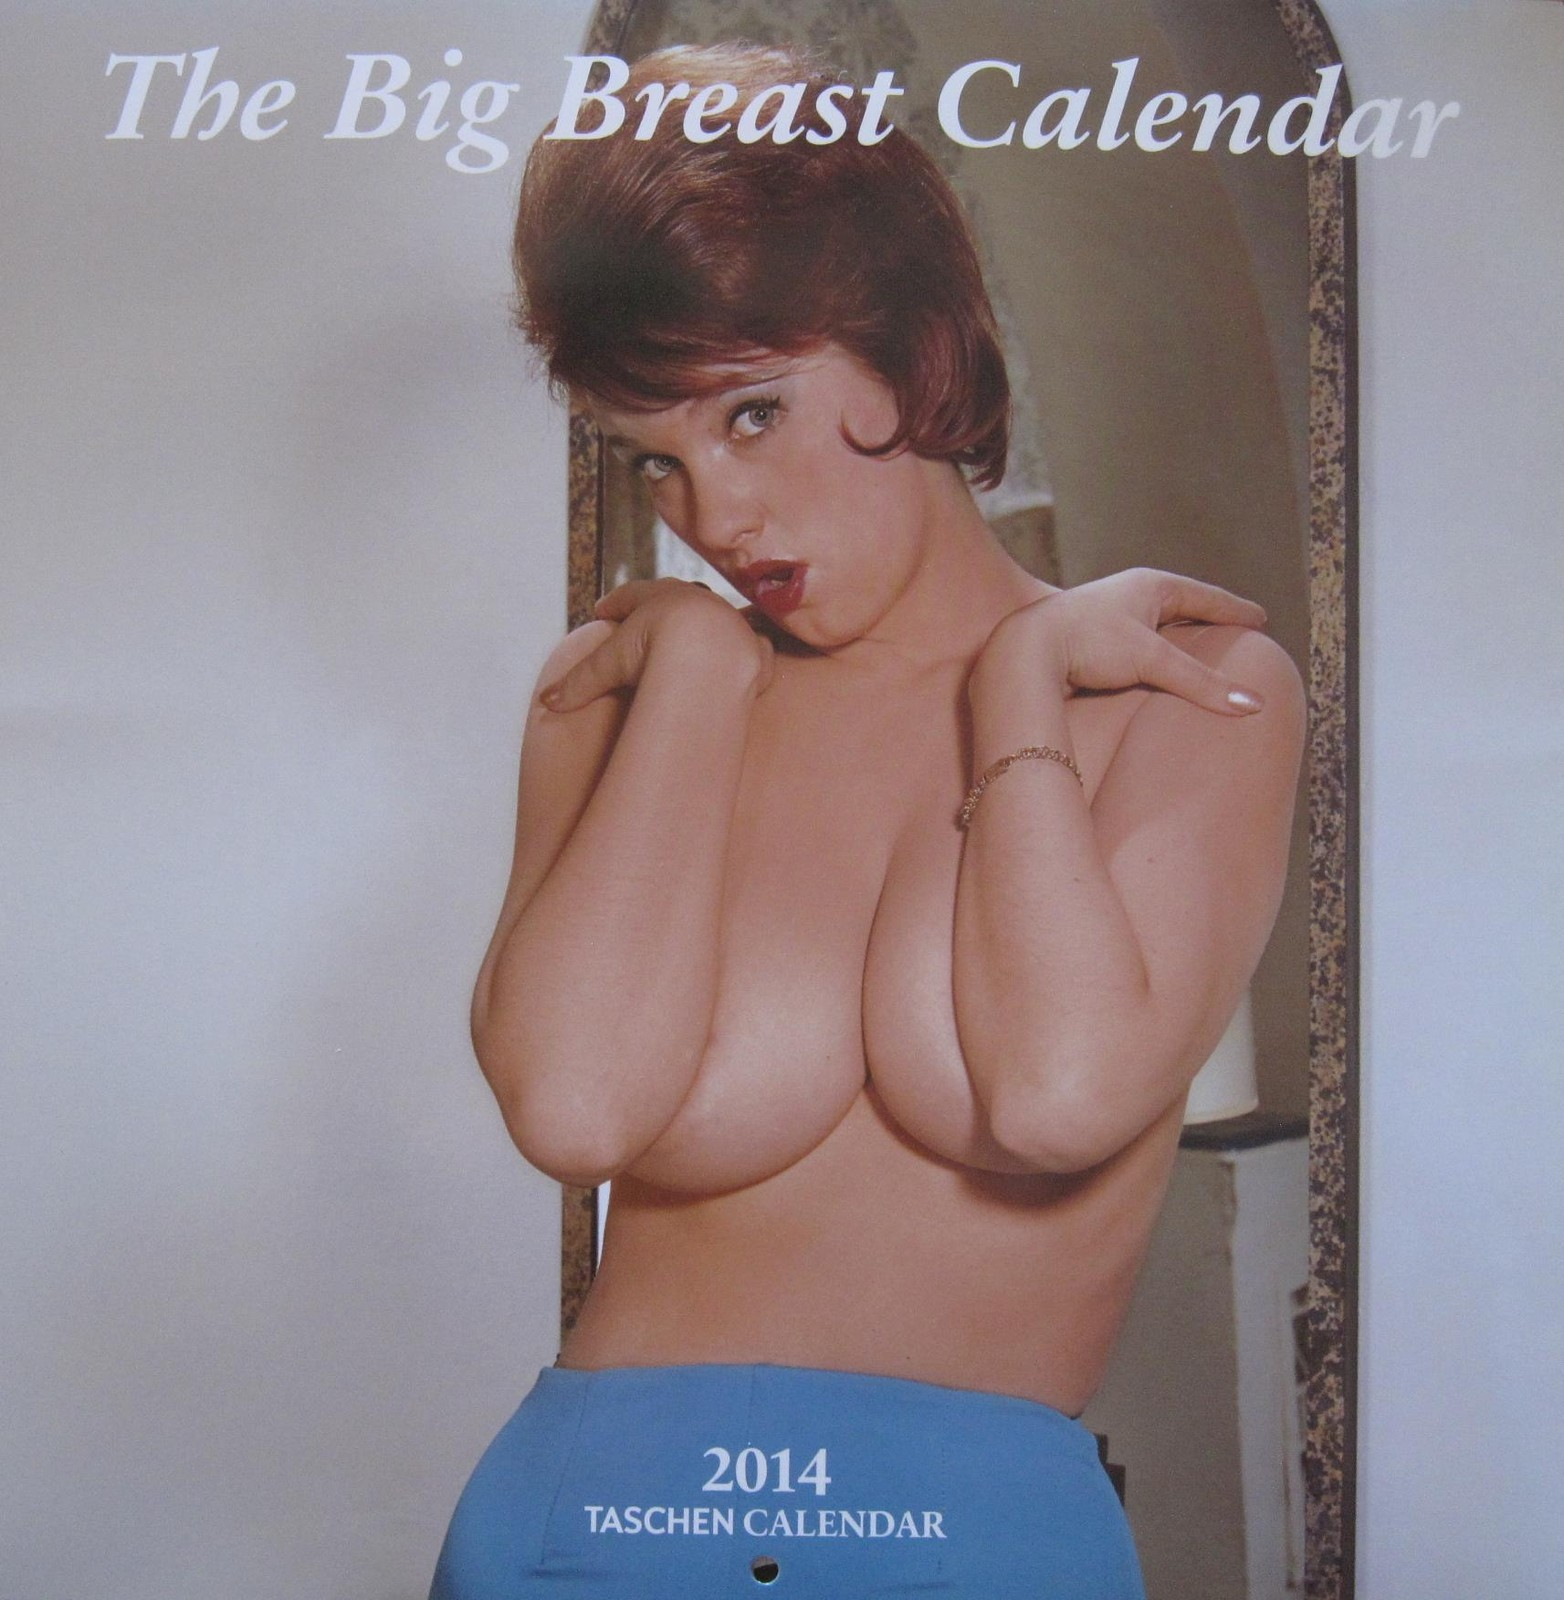 TASCHEN'S 2014 BIG BREAST WALL CALENDARS (5 SEALED and MINT COPIES)